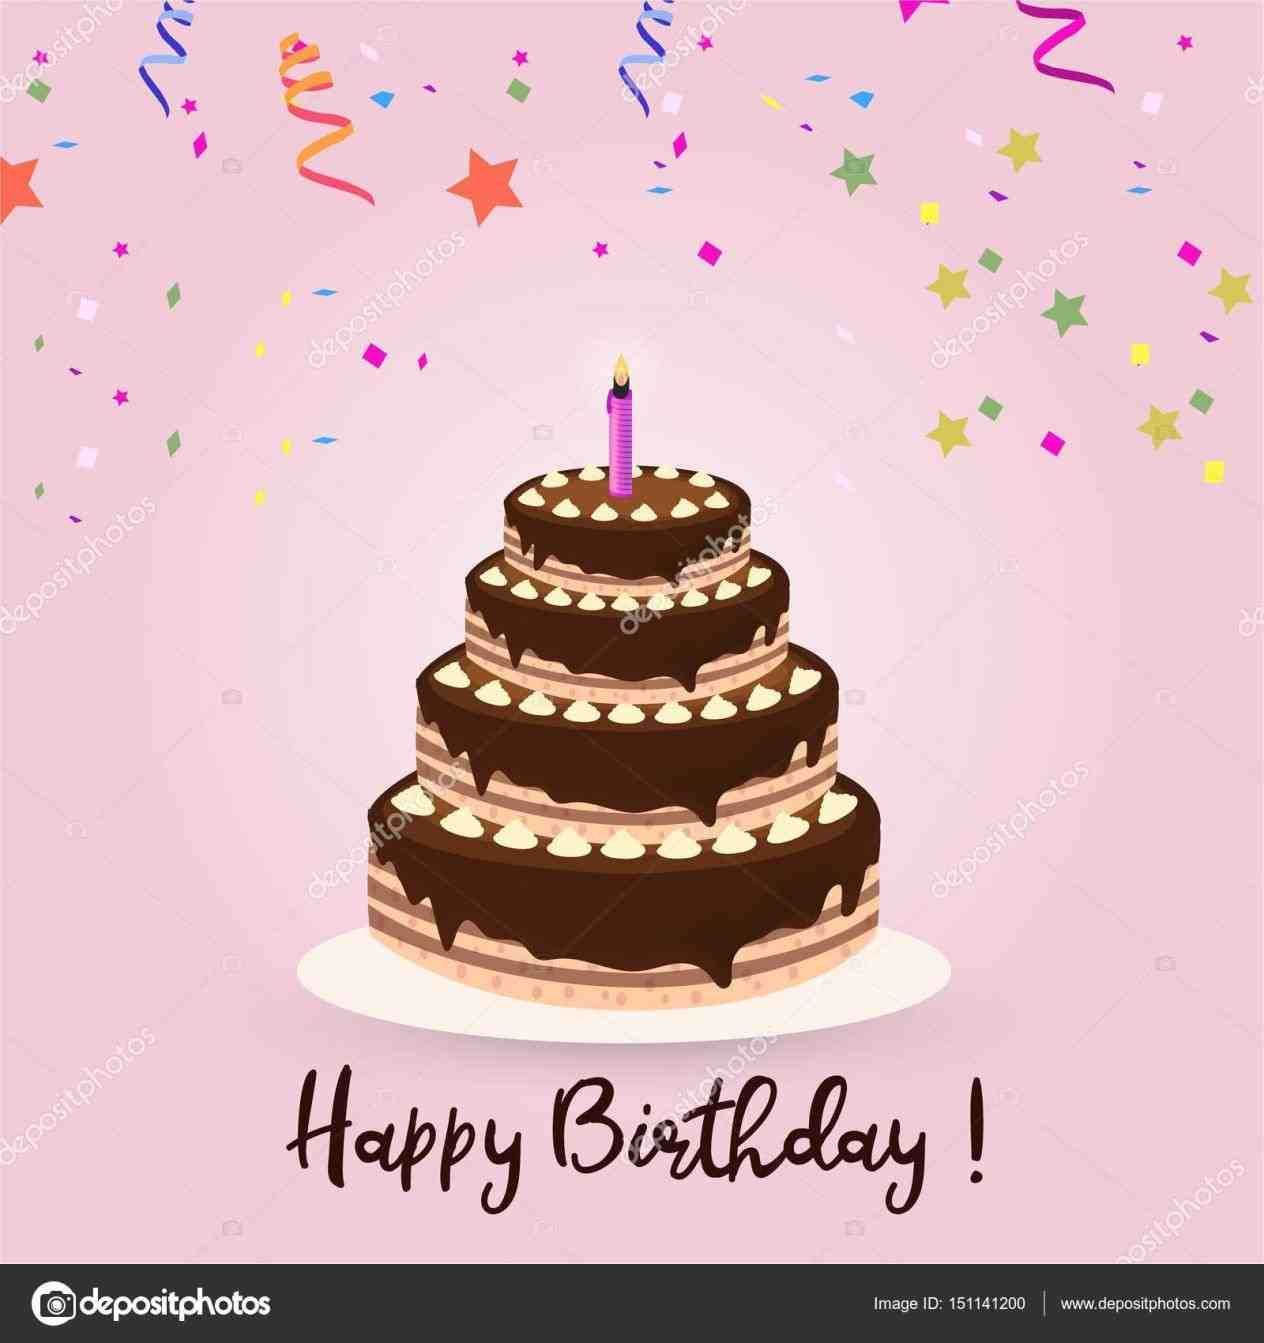 Easy homemade birthday cards to get ideas how to make your own to get ideas how to make your own birthday card design 1 happy birthday flower hd wallpaper whatsapp happy birthday wishes video song free download mp4 bookmarktalkfo Gallery